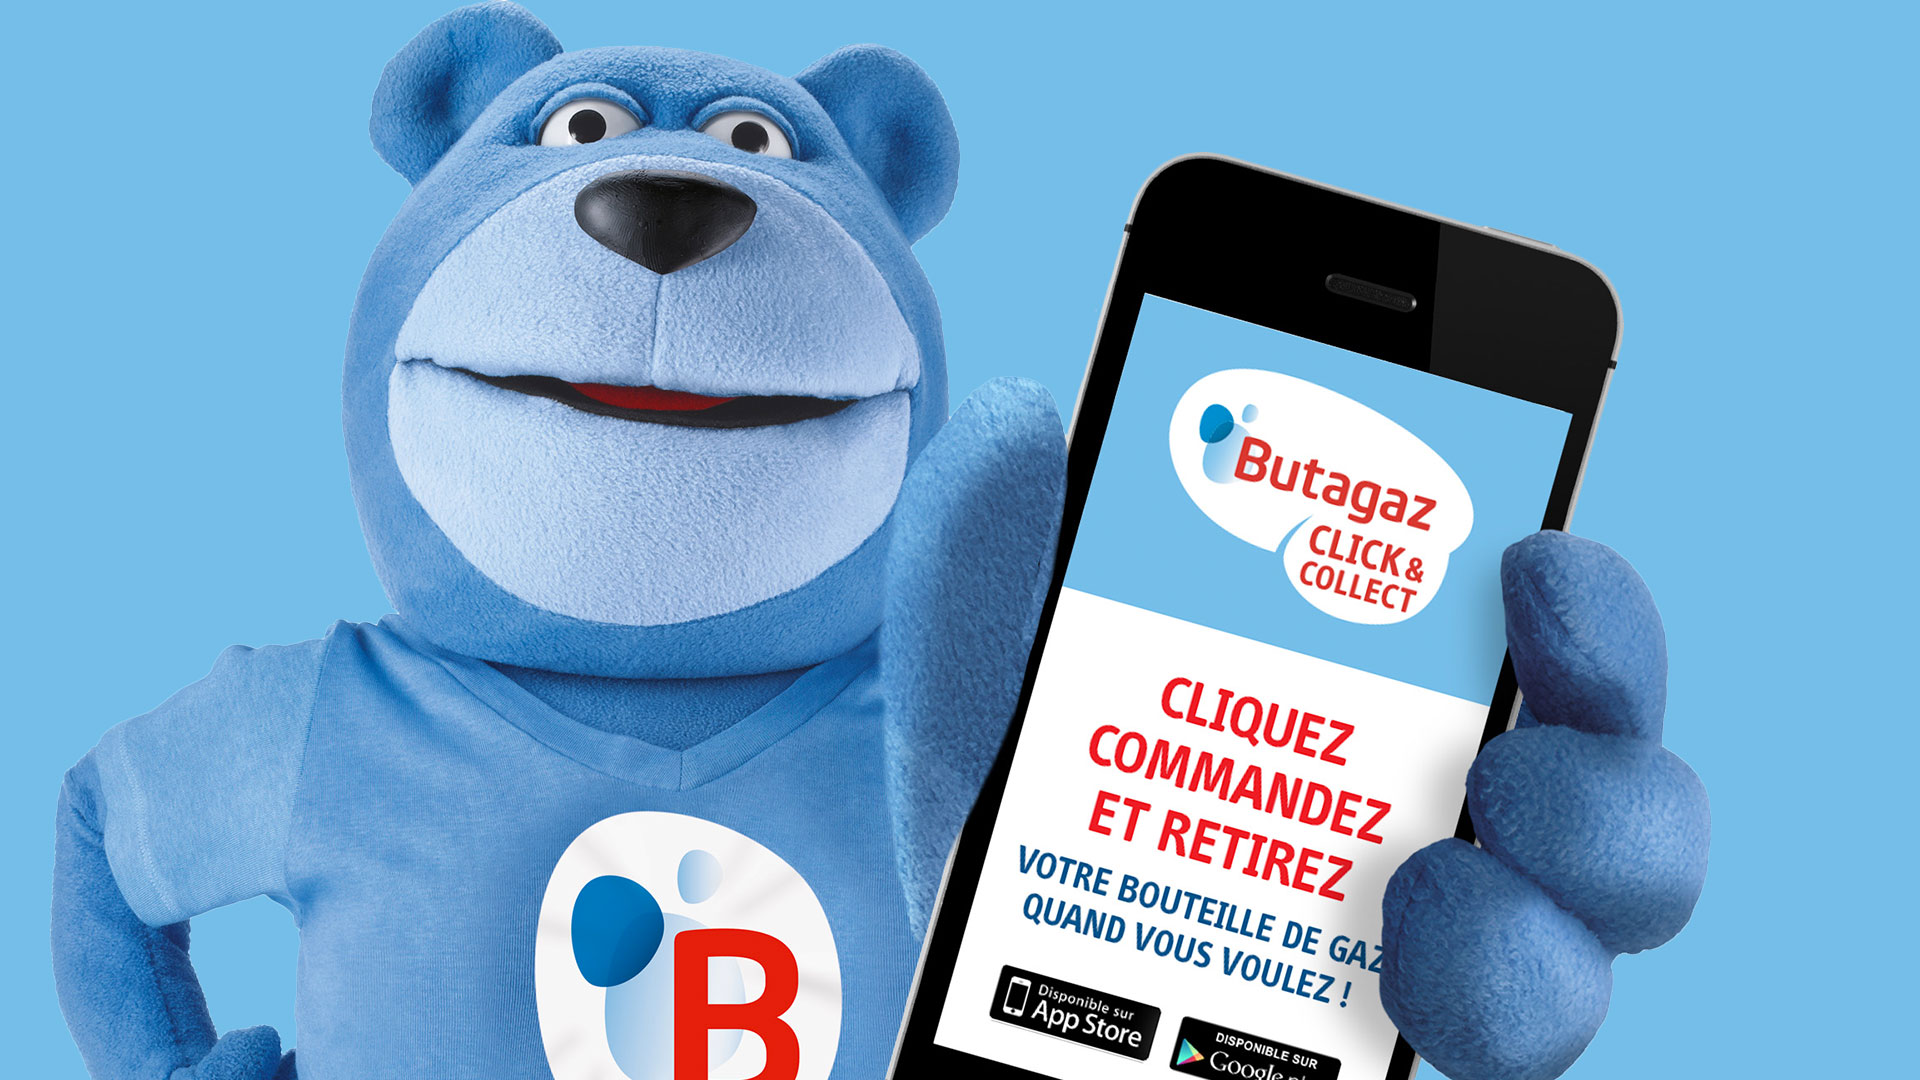 Butagaz Click & Collect